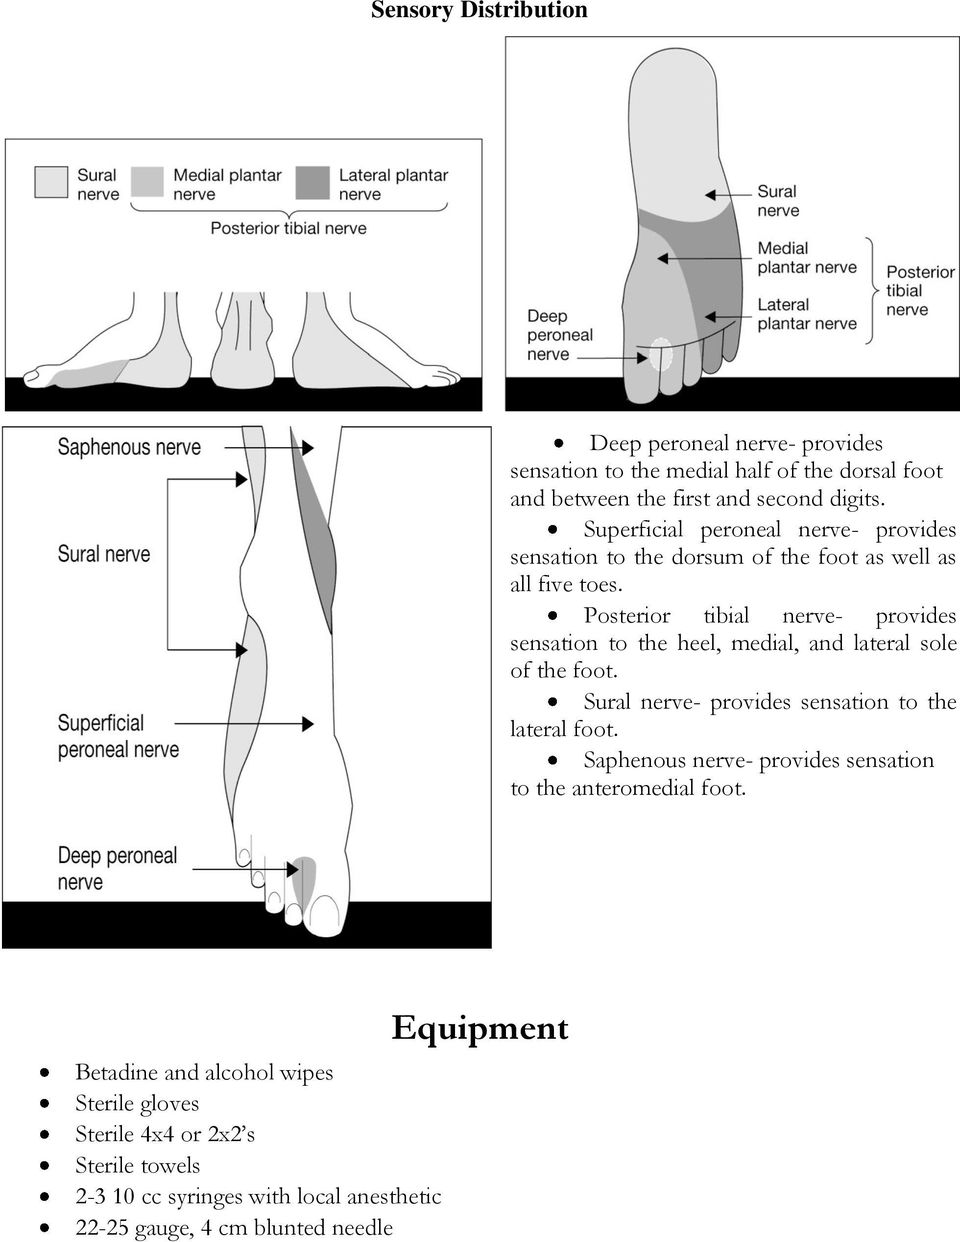 Posterior tibial nerve- provides sensation to the heel, medial, and lateral sole of the foot. Sural nerve- provides sensation to the lateral foot.